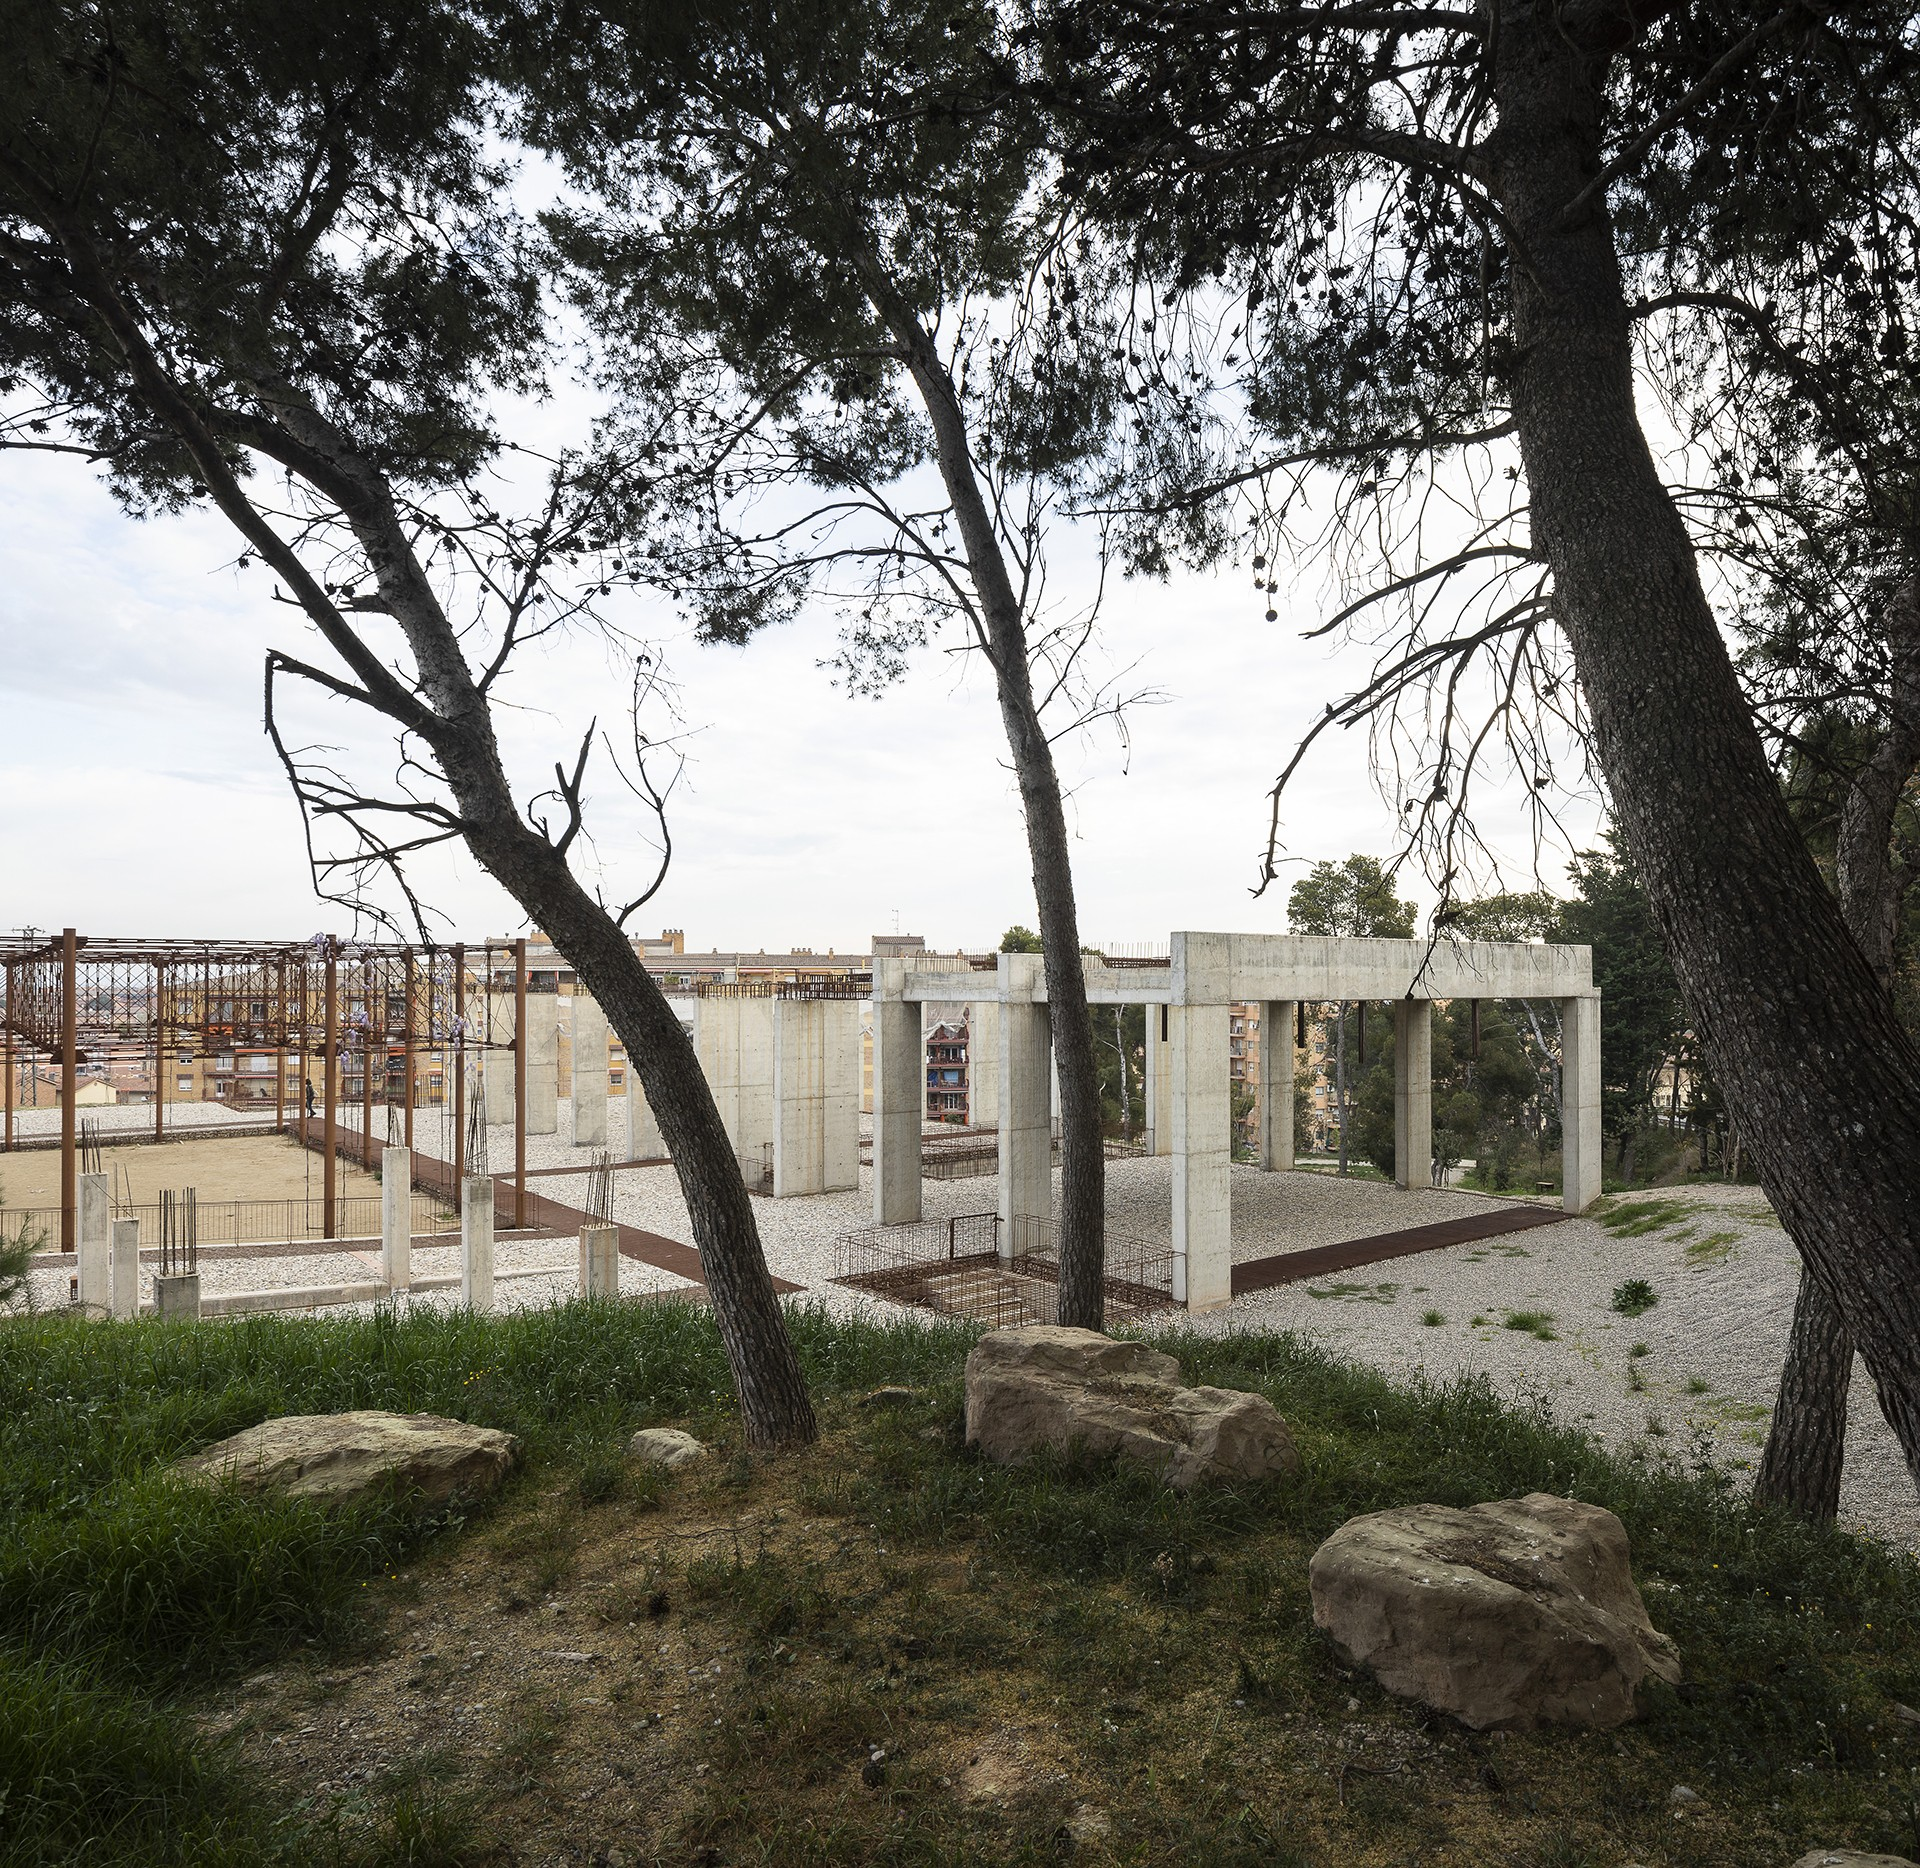 Acero Radici Invasive container and contents: the climate museum in lleida by toni